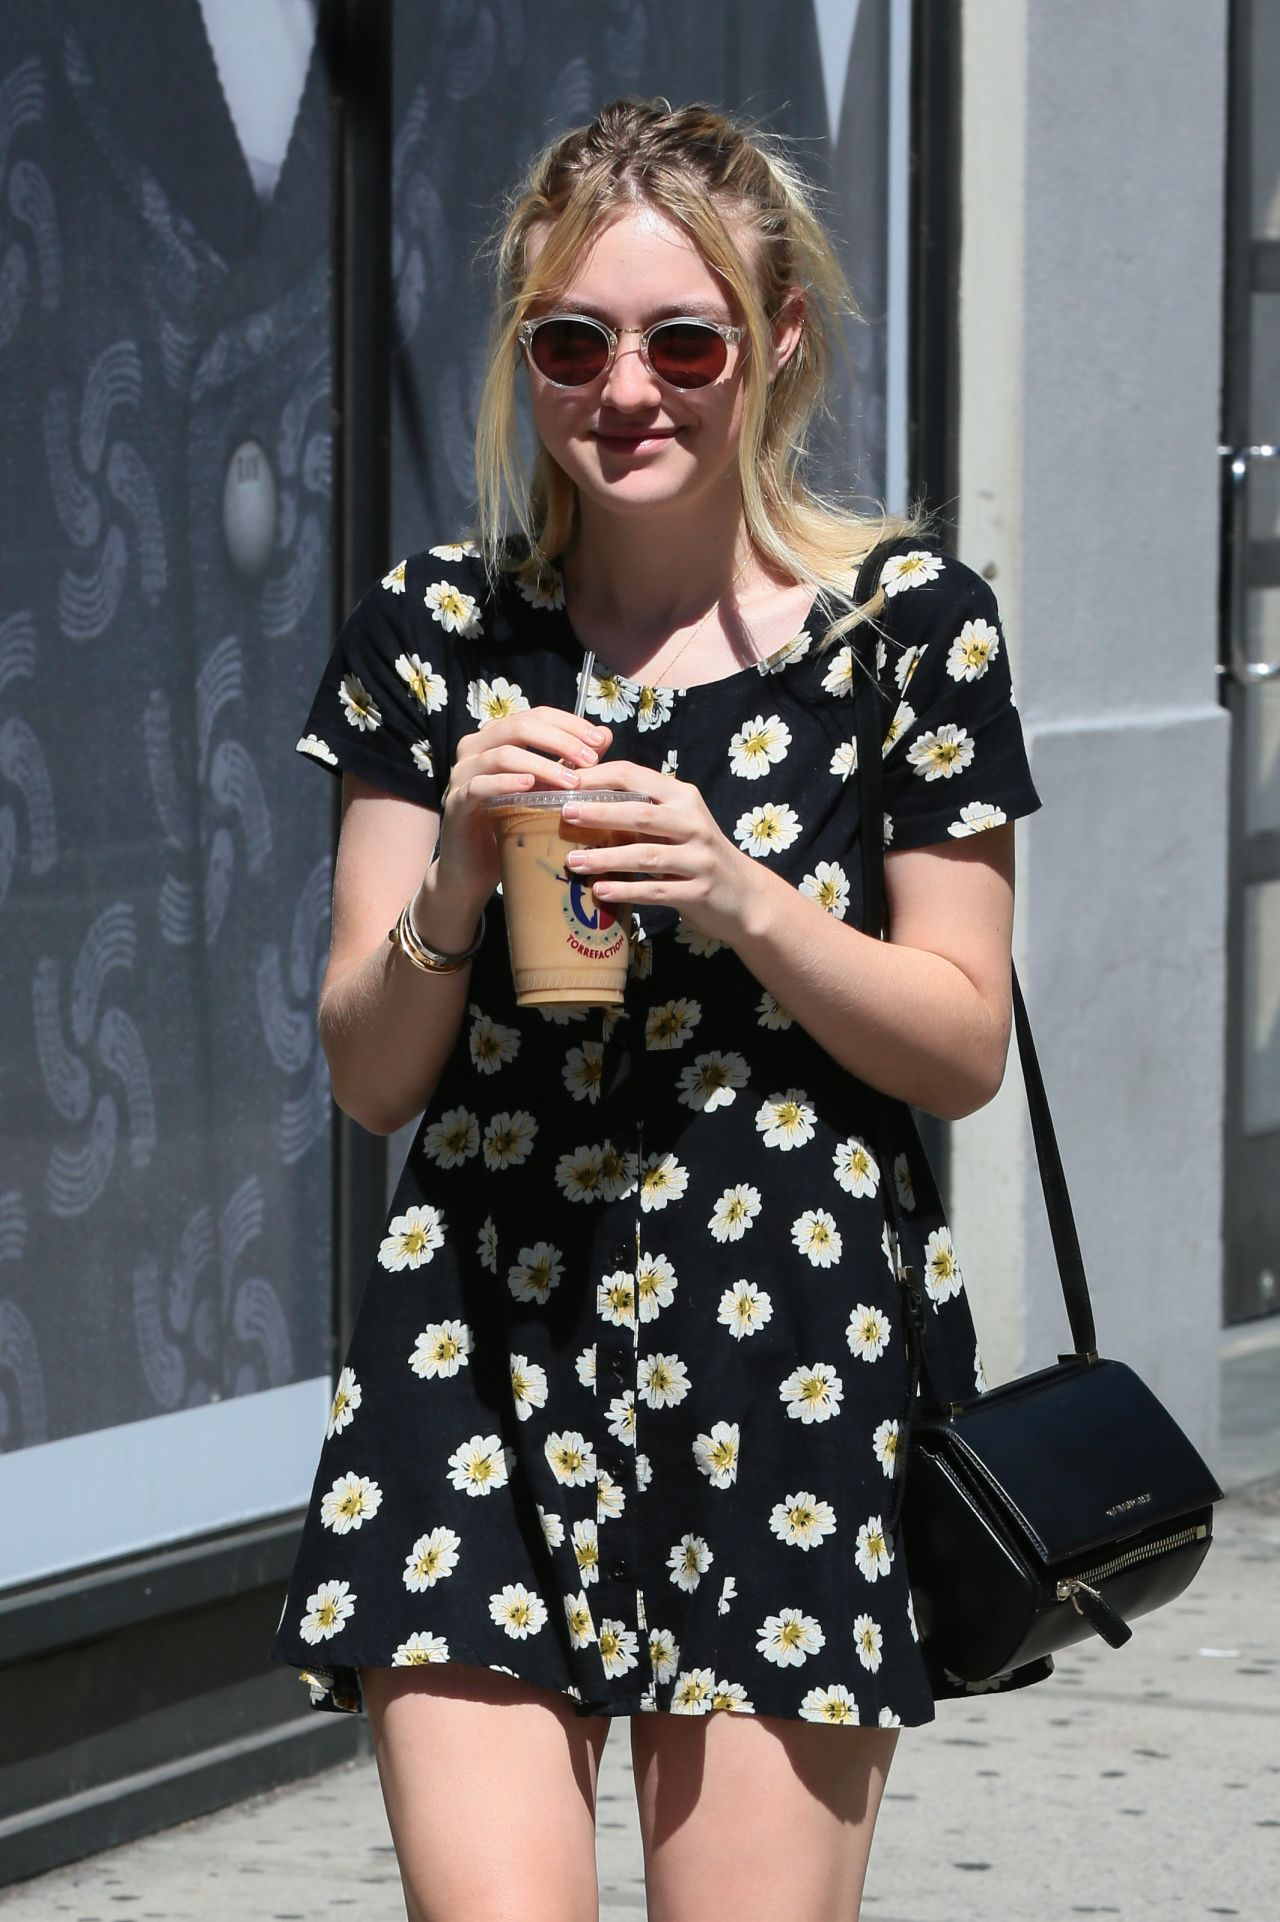 Dakota Fanning in Mini Dress - Out in New York City - September 2014